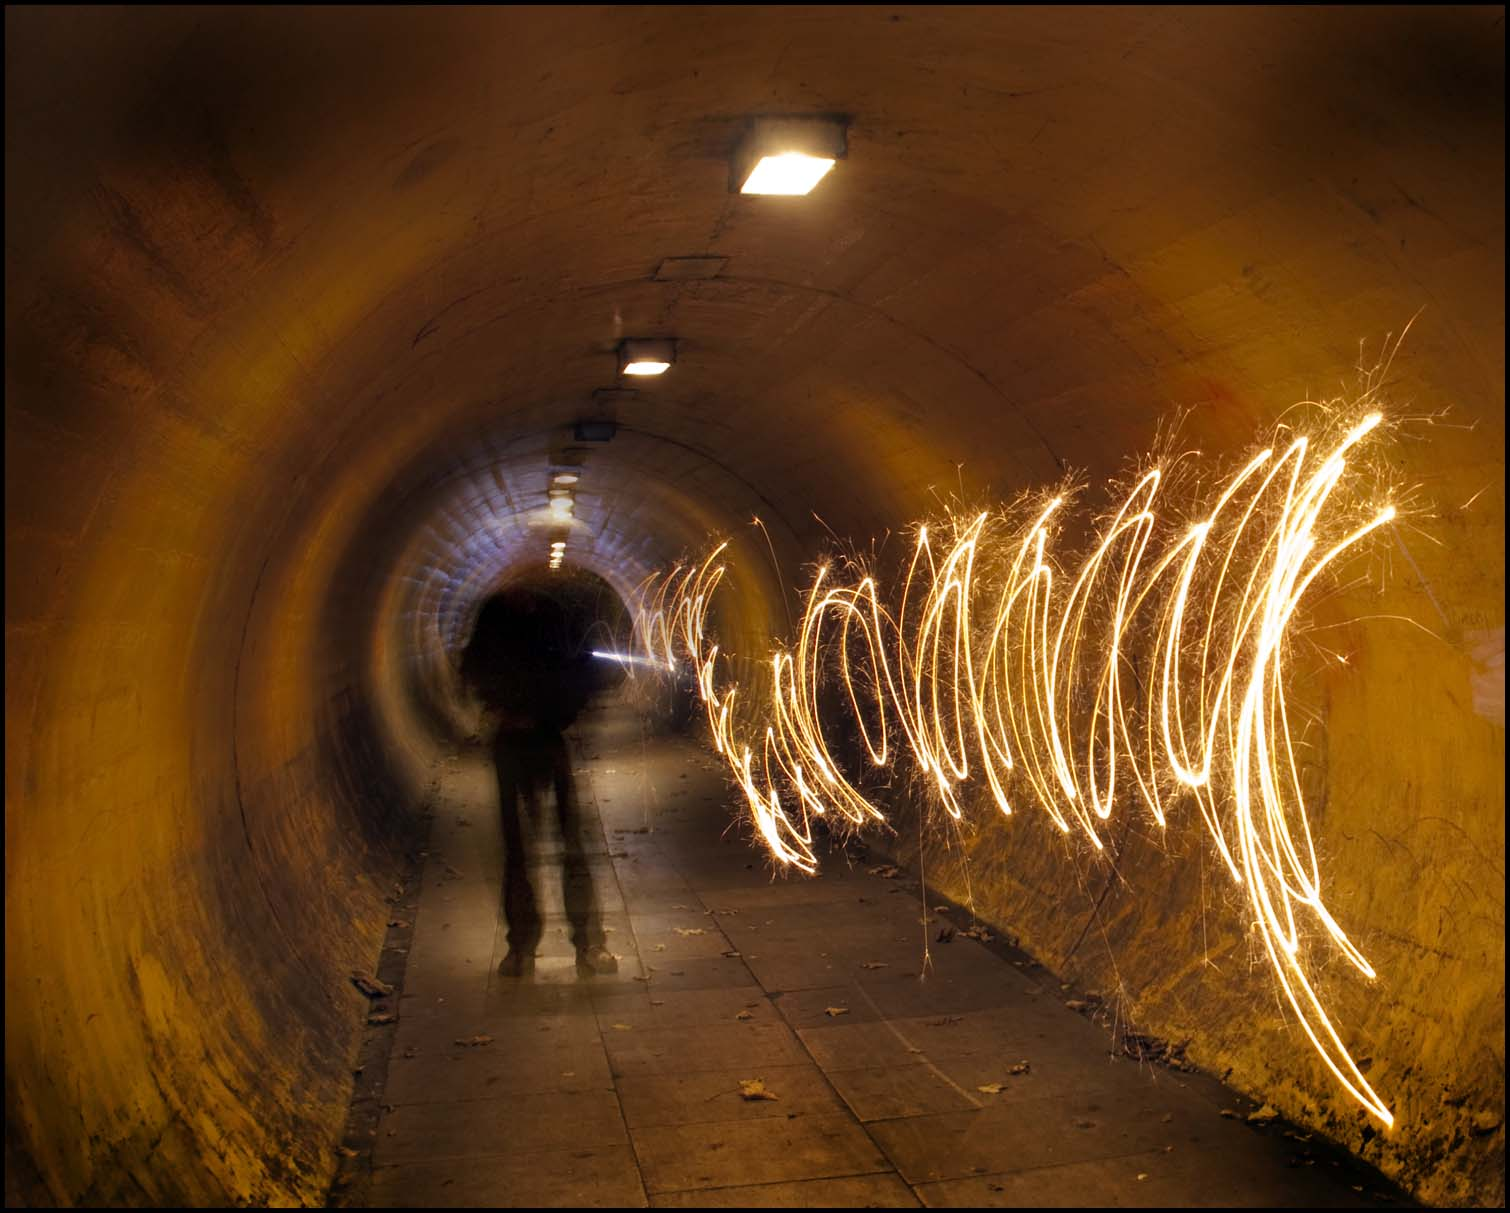 man,tunnel,latchford,Cheshire,Village,Warrington,UK,England,Britain,yellow,menace,menacing,night,light,trail,sparkler,sparklers,ambiant,available,low,low light,A50,knutsford,road,knutsford road,rd,kingsway,path,pathway,suburban,urban,railway,swing,bridge,swingbridge,circle,cylinder,walk,way,walkway,latchfood,365days,www.thewdcc.org.uk,thewdcc.org.uk,wdcc.org.uk,society,District,Camera,club,photographic,photography,SLR,DSLR,group,GYCA,Bellhouse,bellhouse Club,Hotpicks,hotpics,hot,pics,pix,picks,hotpix!